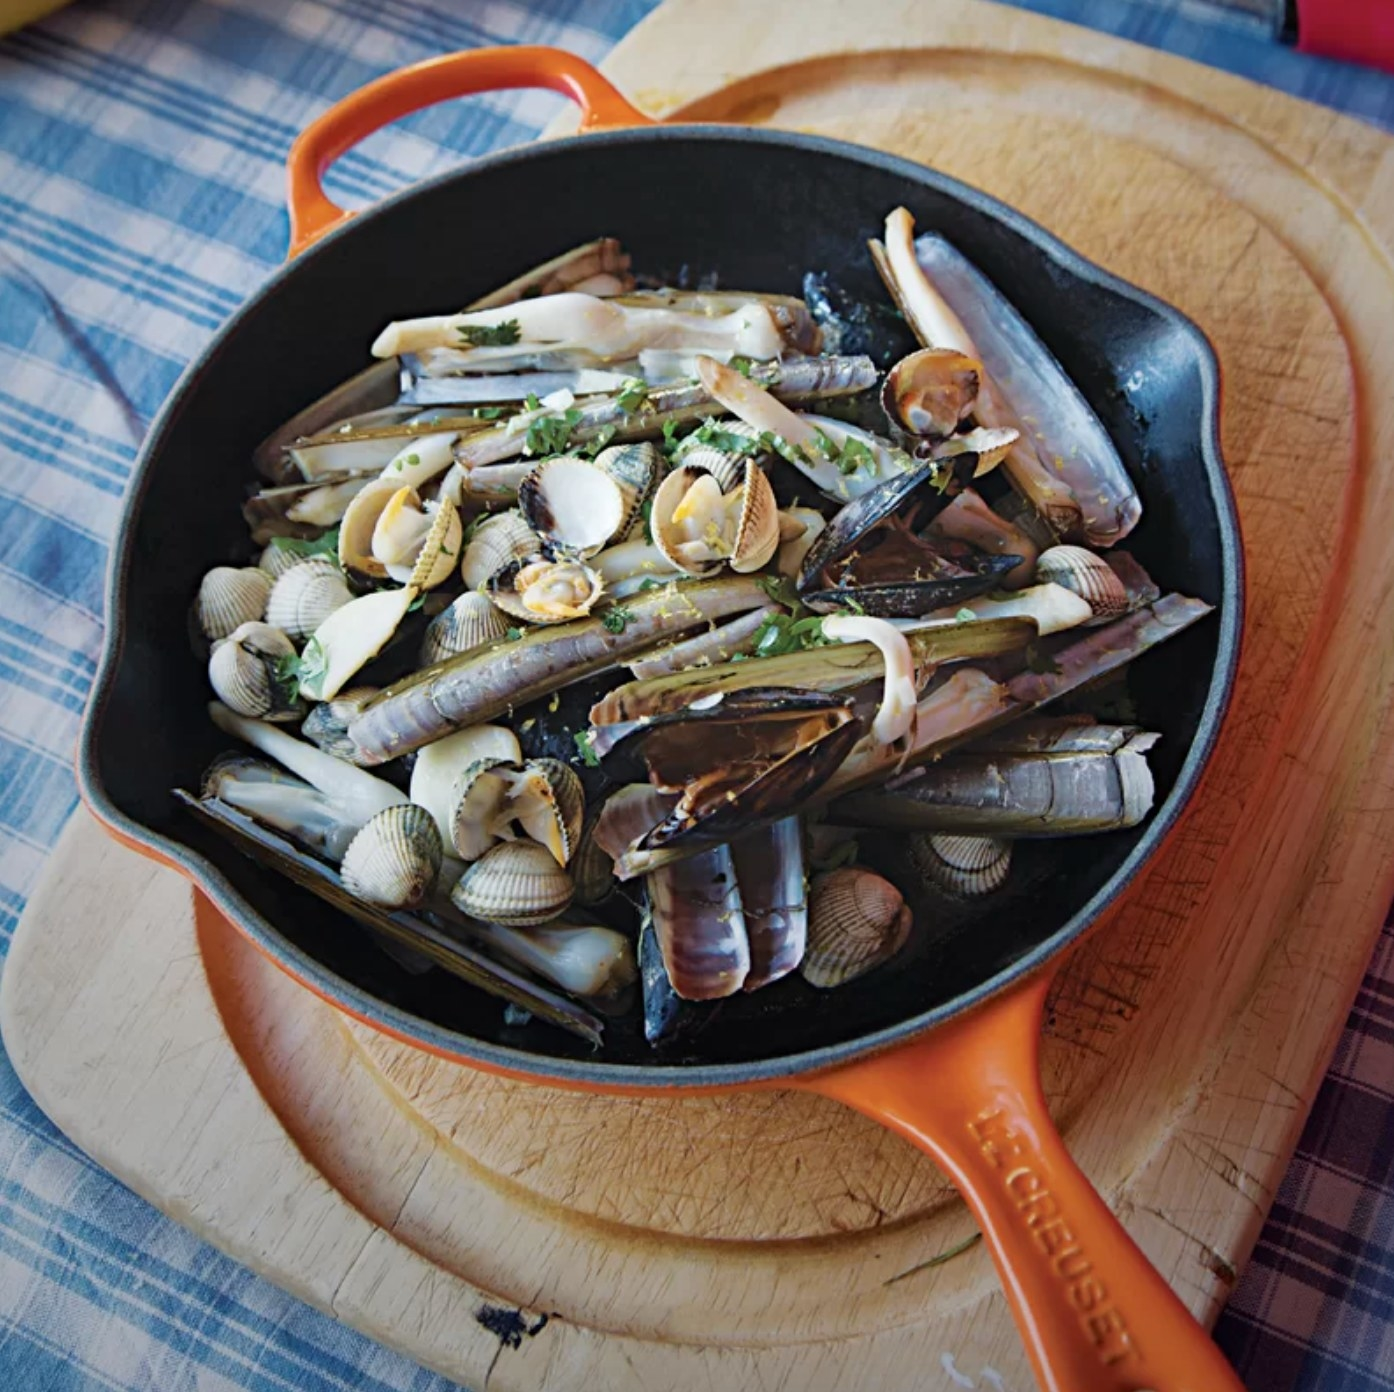 The Le Creuset cast-iron skillet in flame